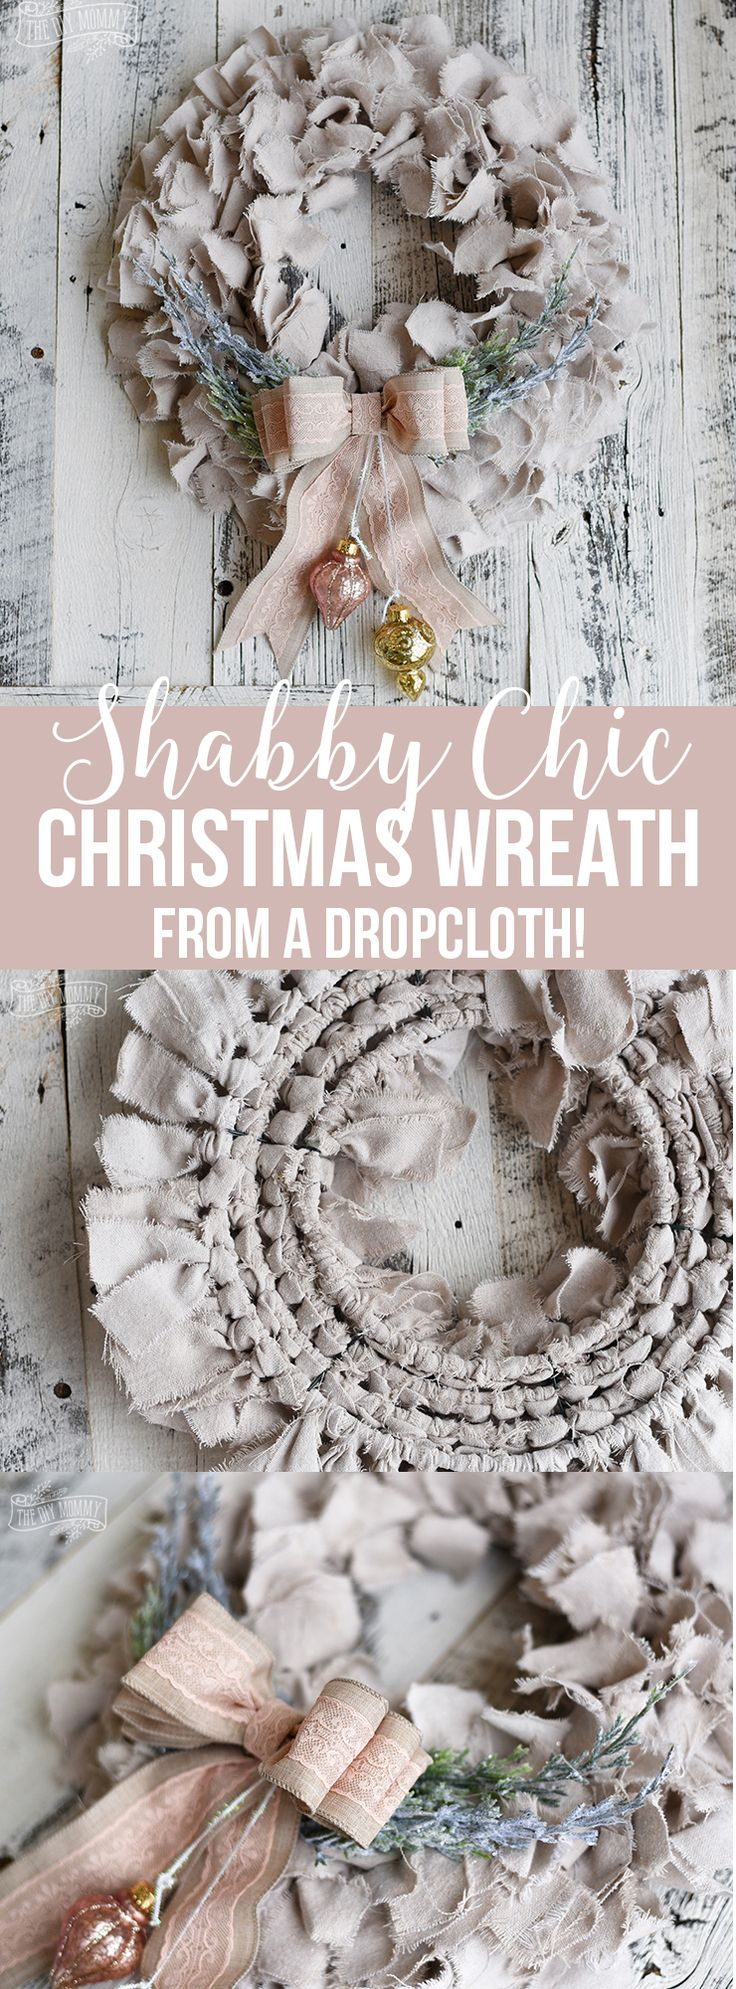 Shabby Chic Dropcloth Rag Christmas Wreath